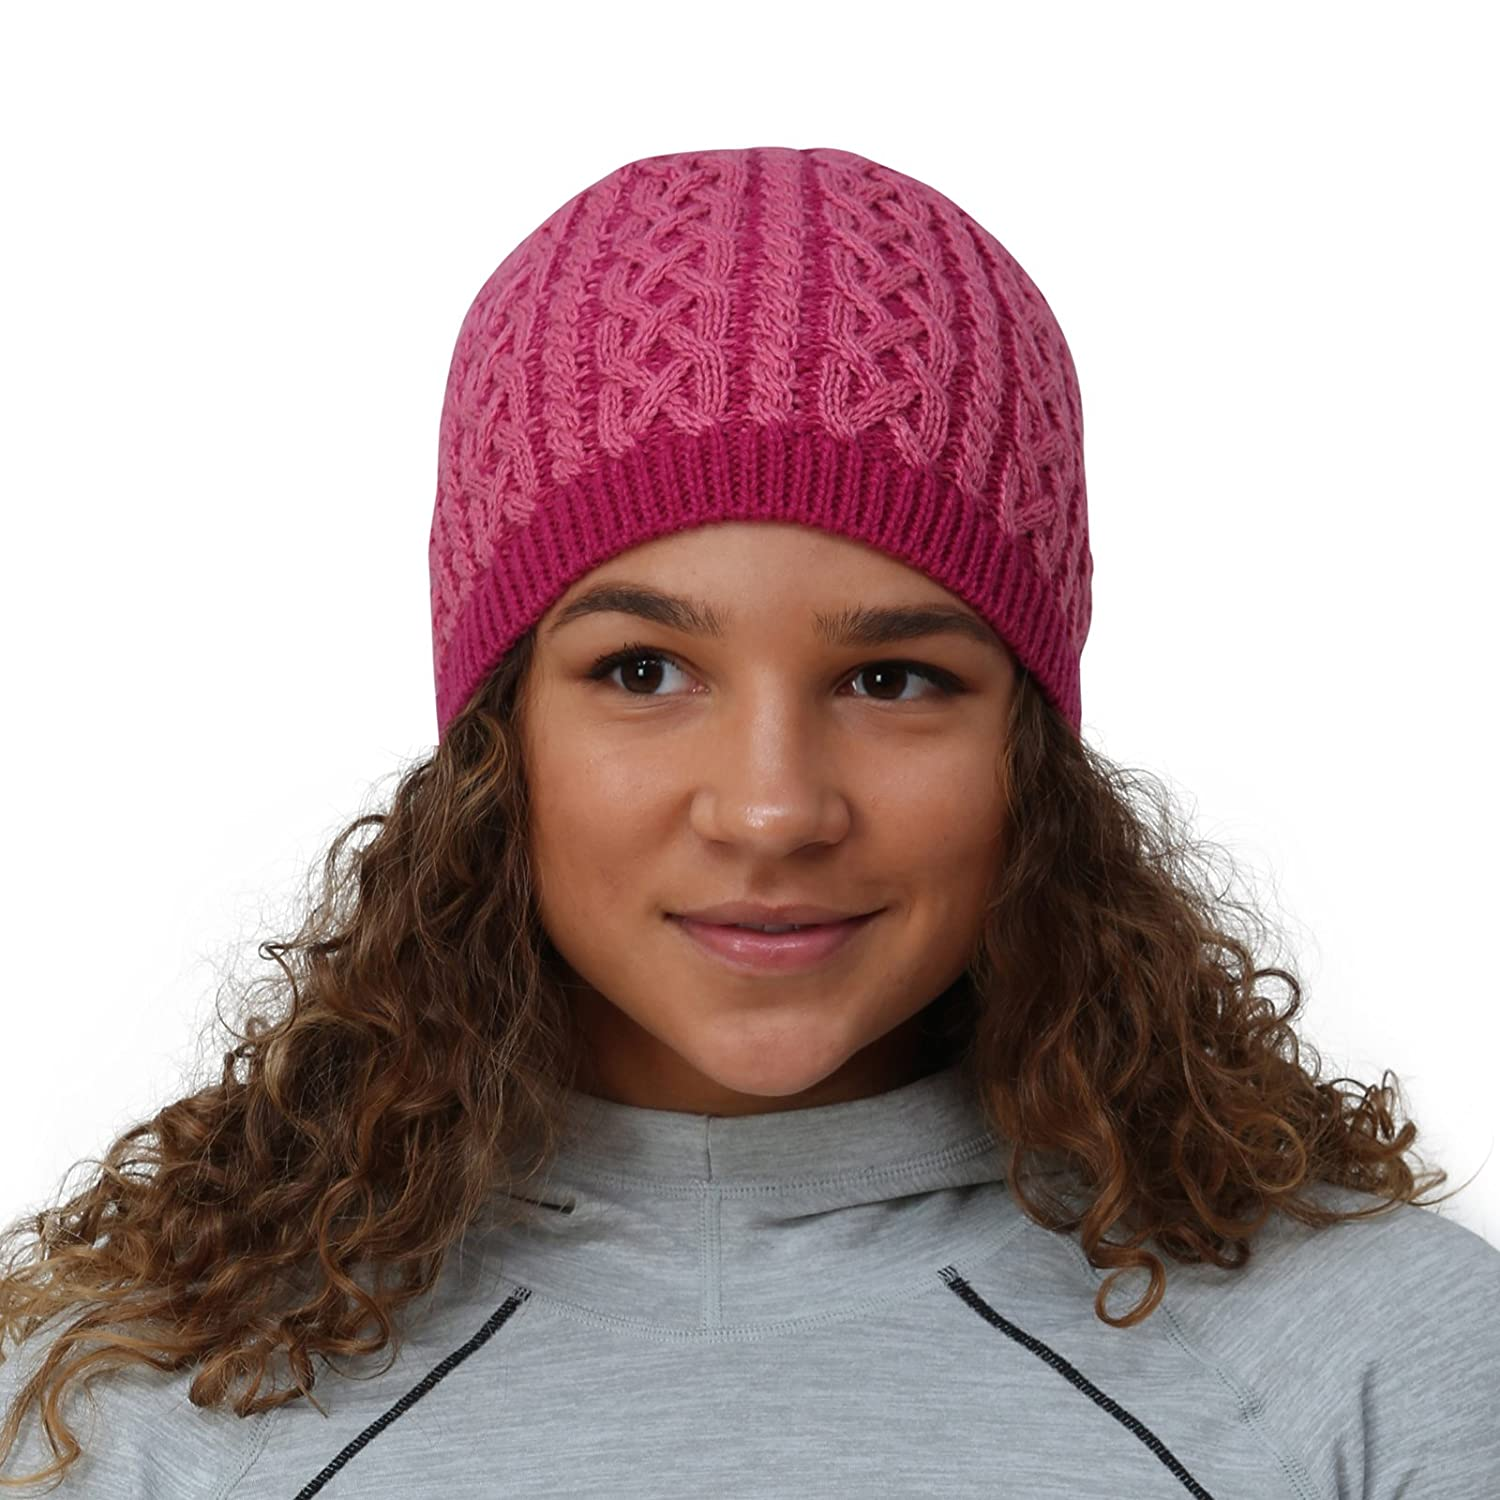 TrailHeads Cable Knit Women's Winter Beanie - 2 Colors - black / white